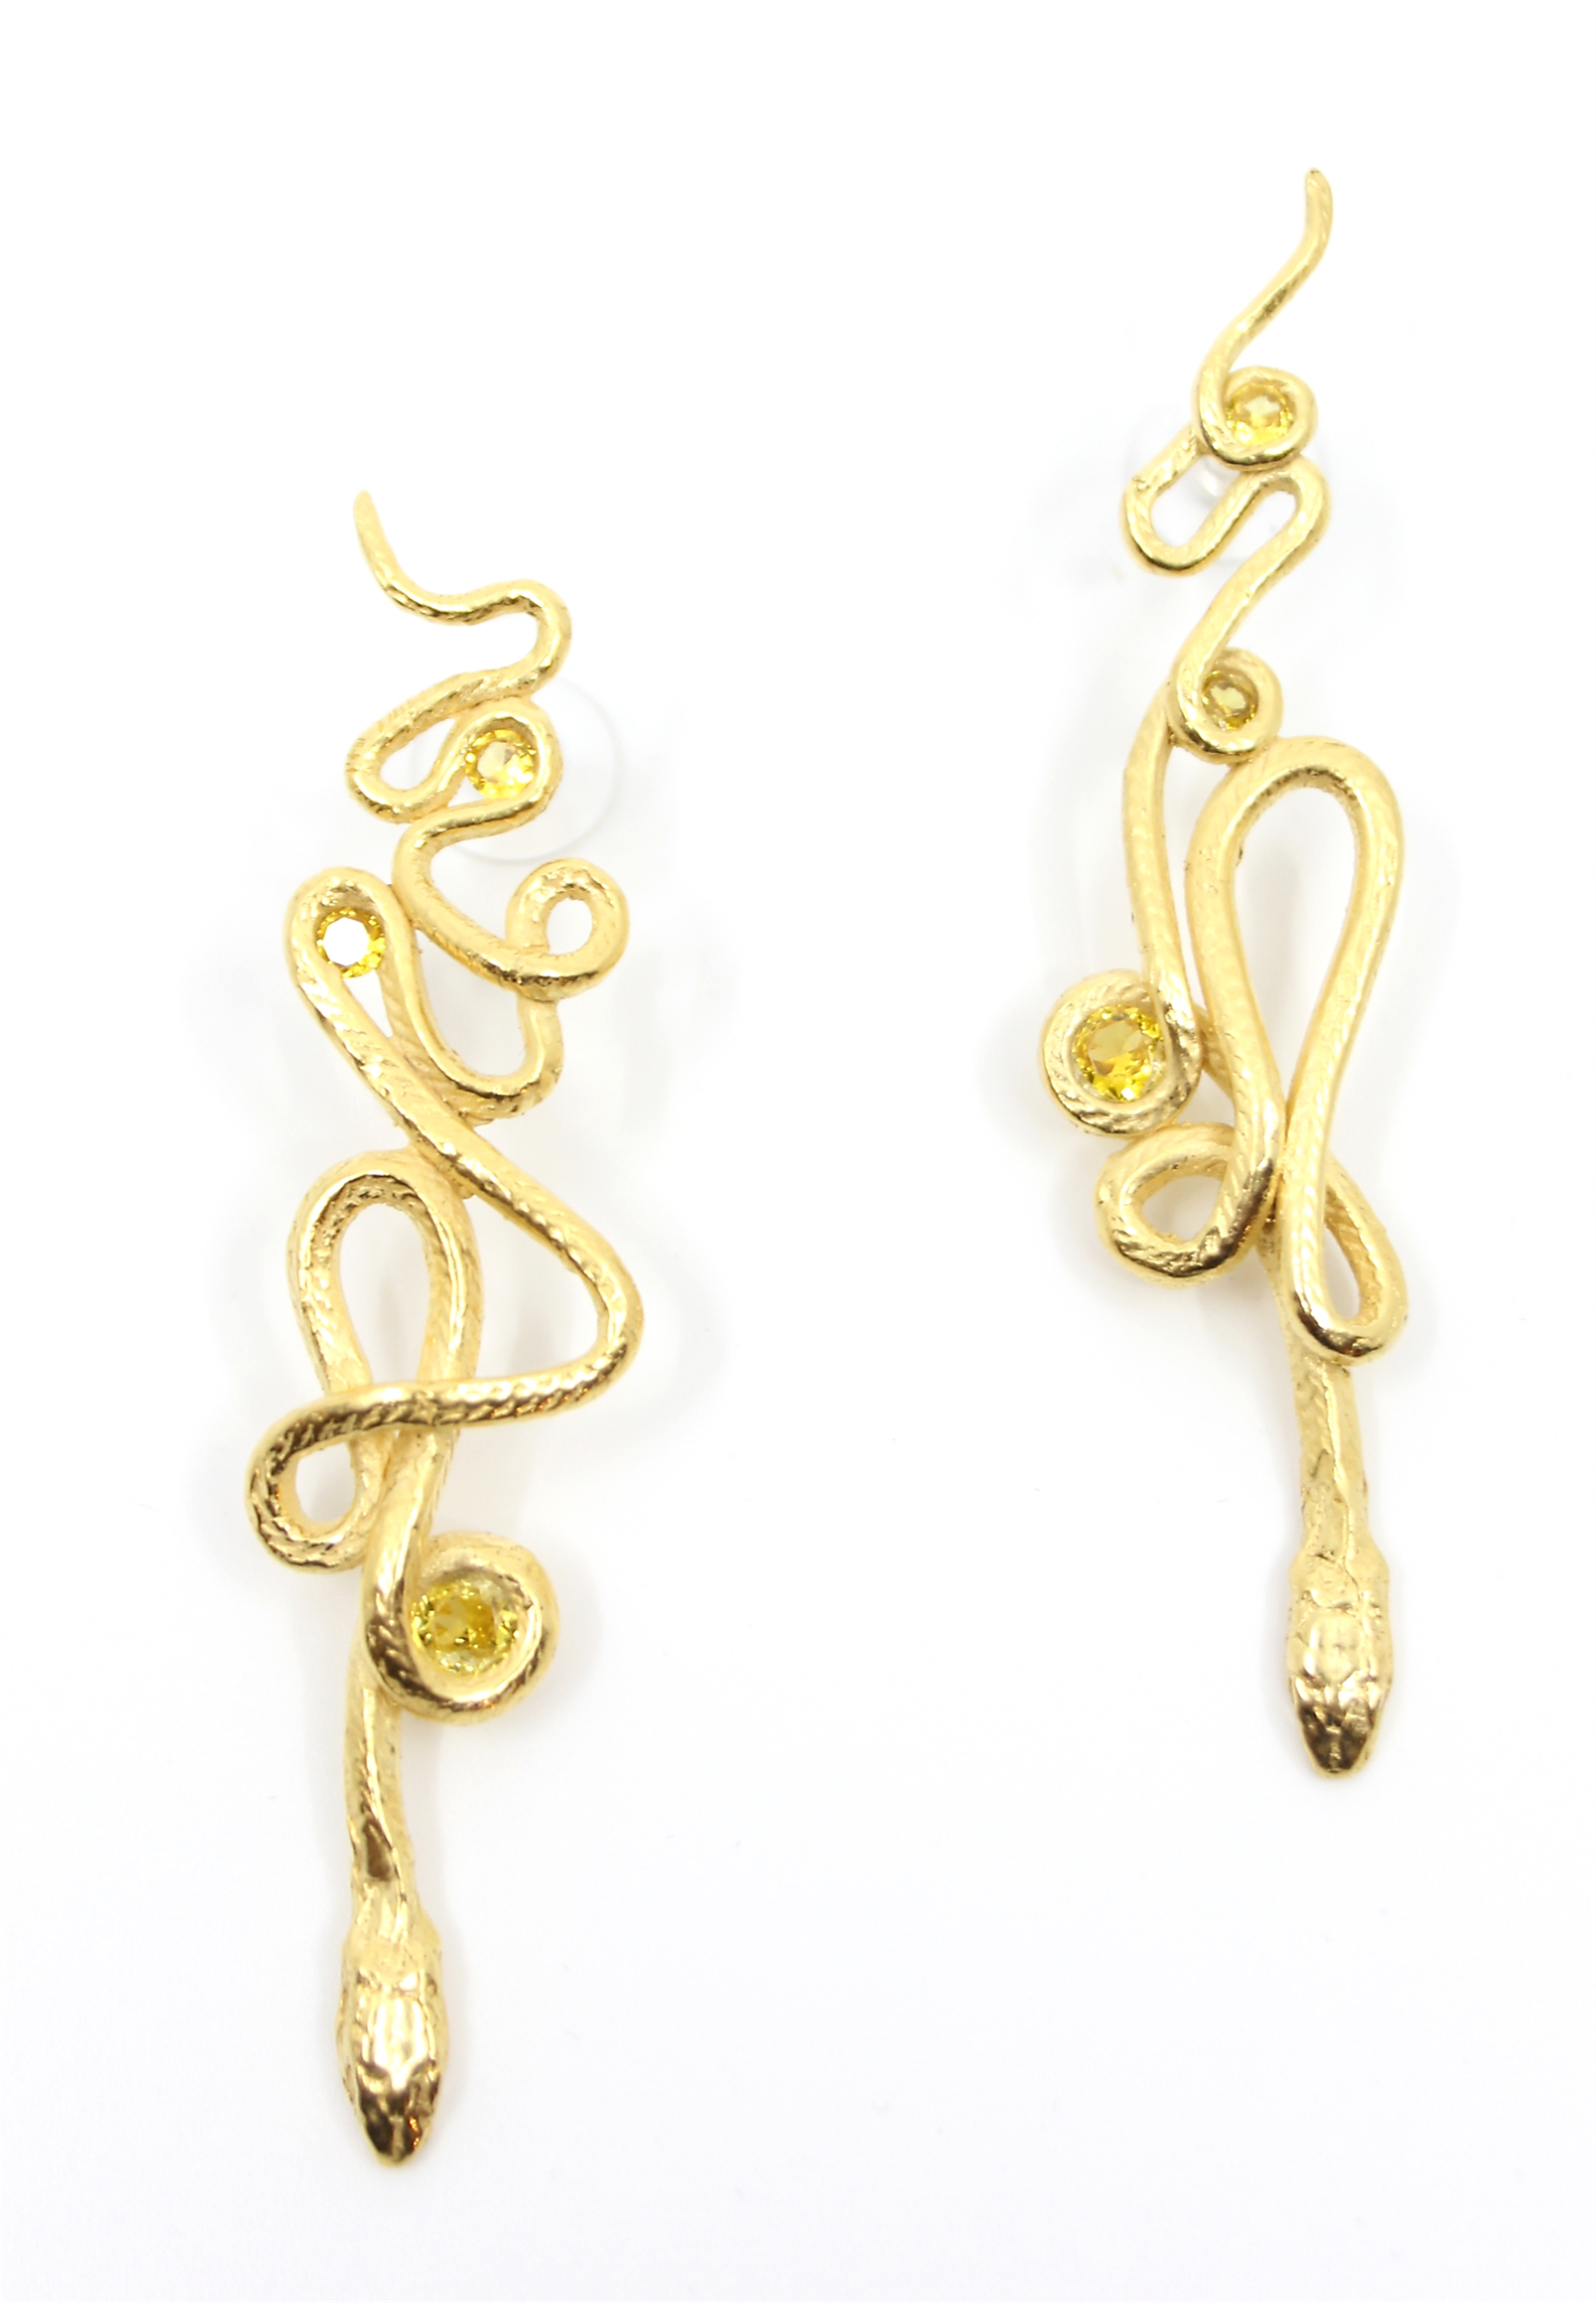 Gold Topaz Serpentine Earrings by Anna Johnson